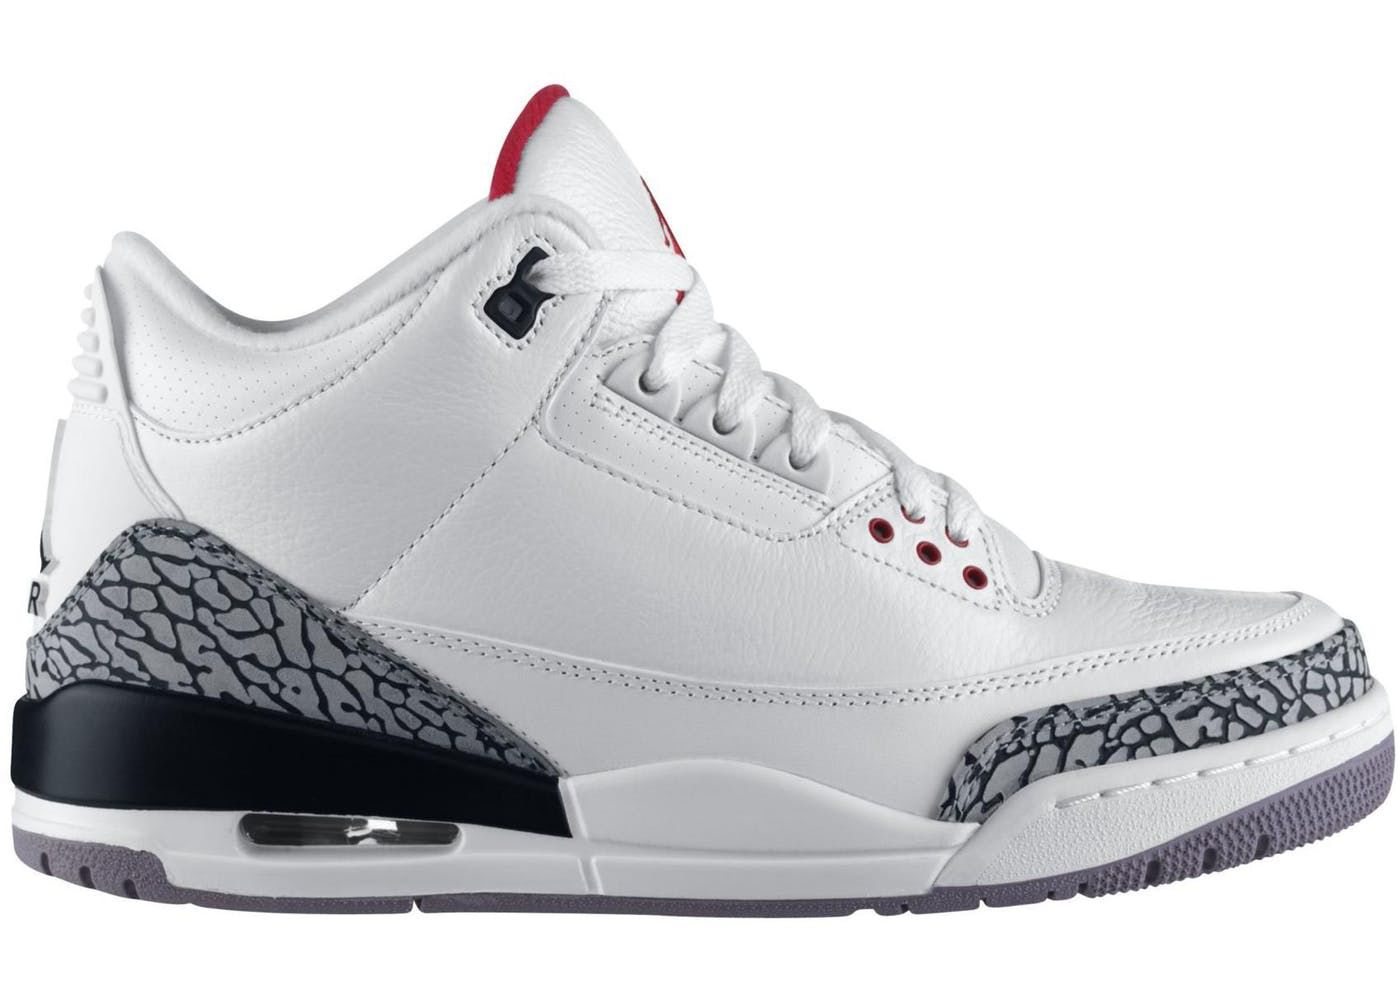 big sale 59aa6 05834 Check out the Jordan 3 Retro White Cement (2011) available ...